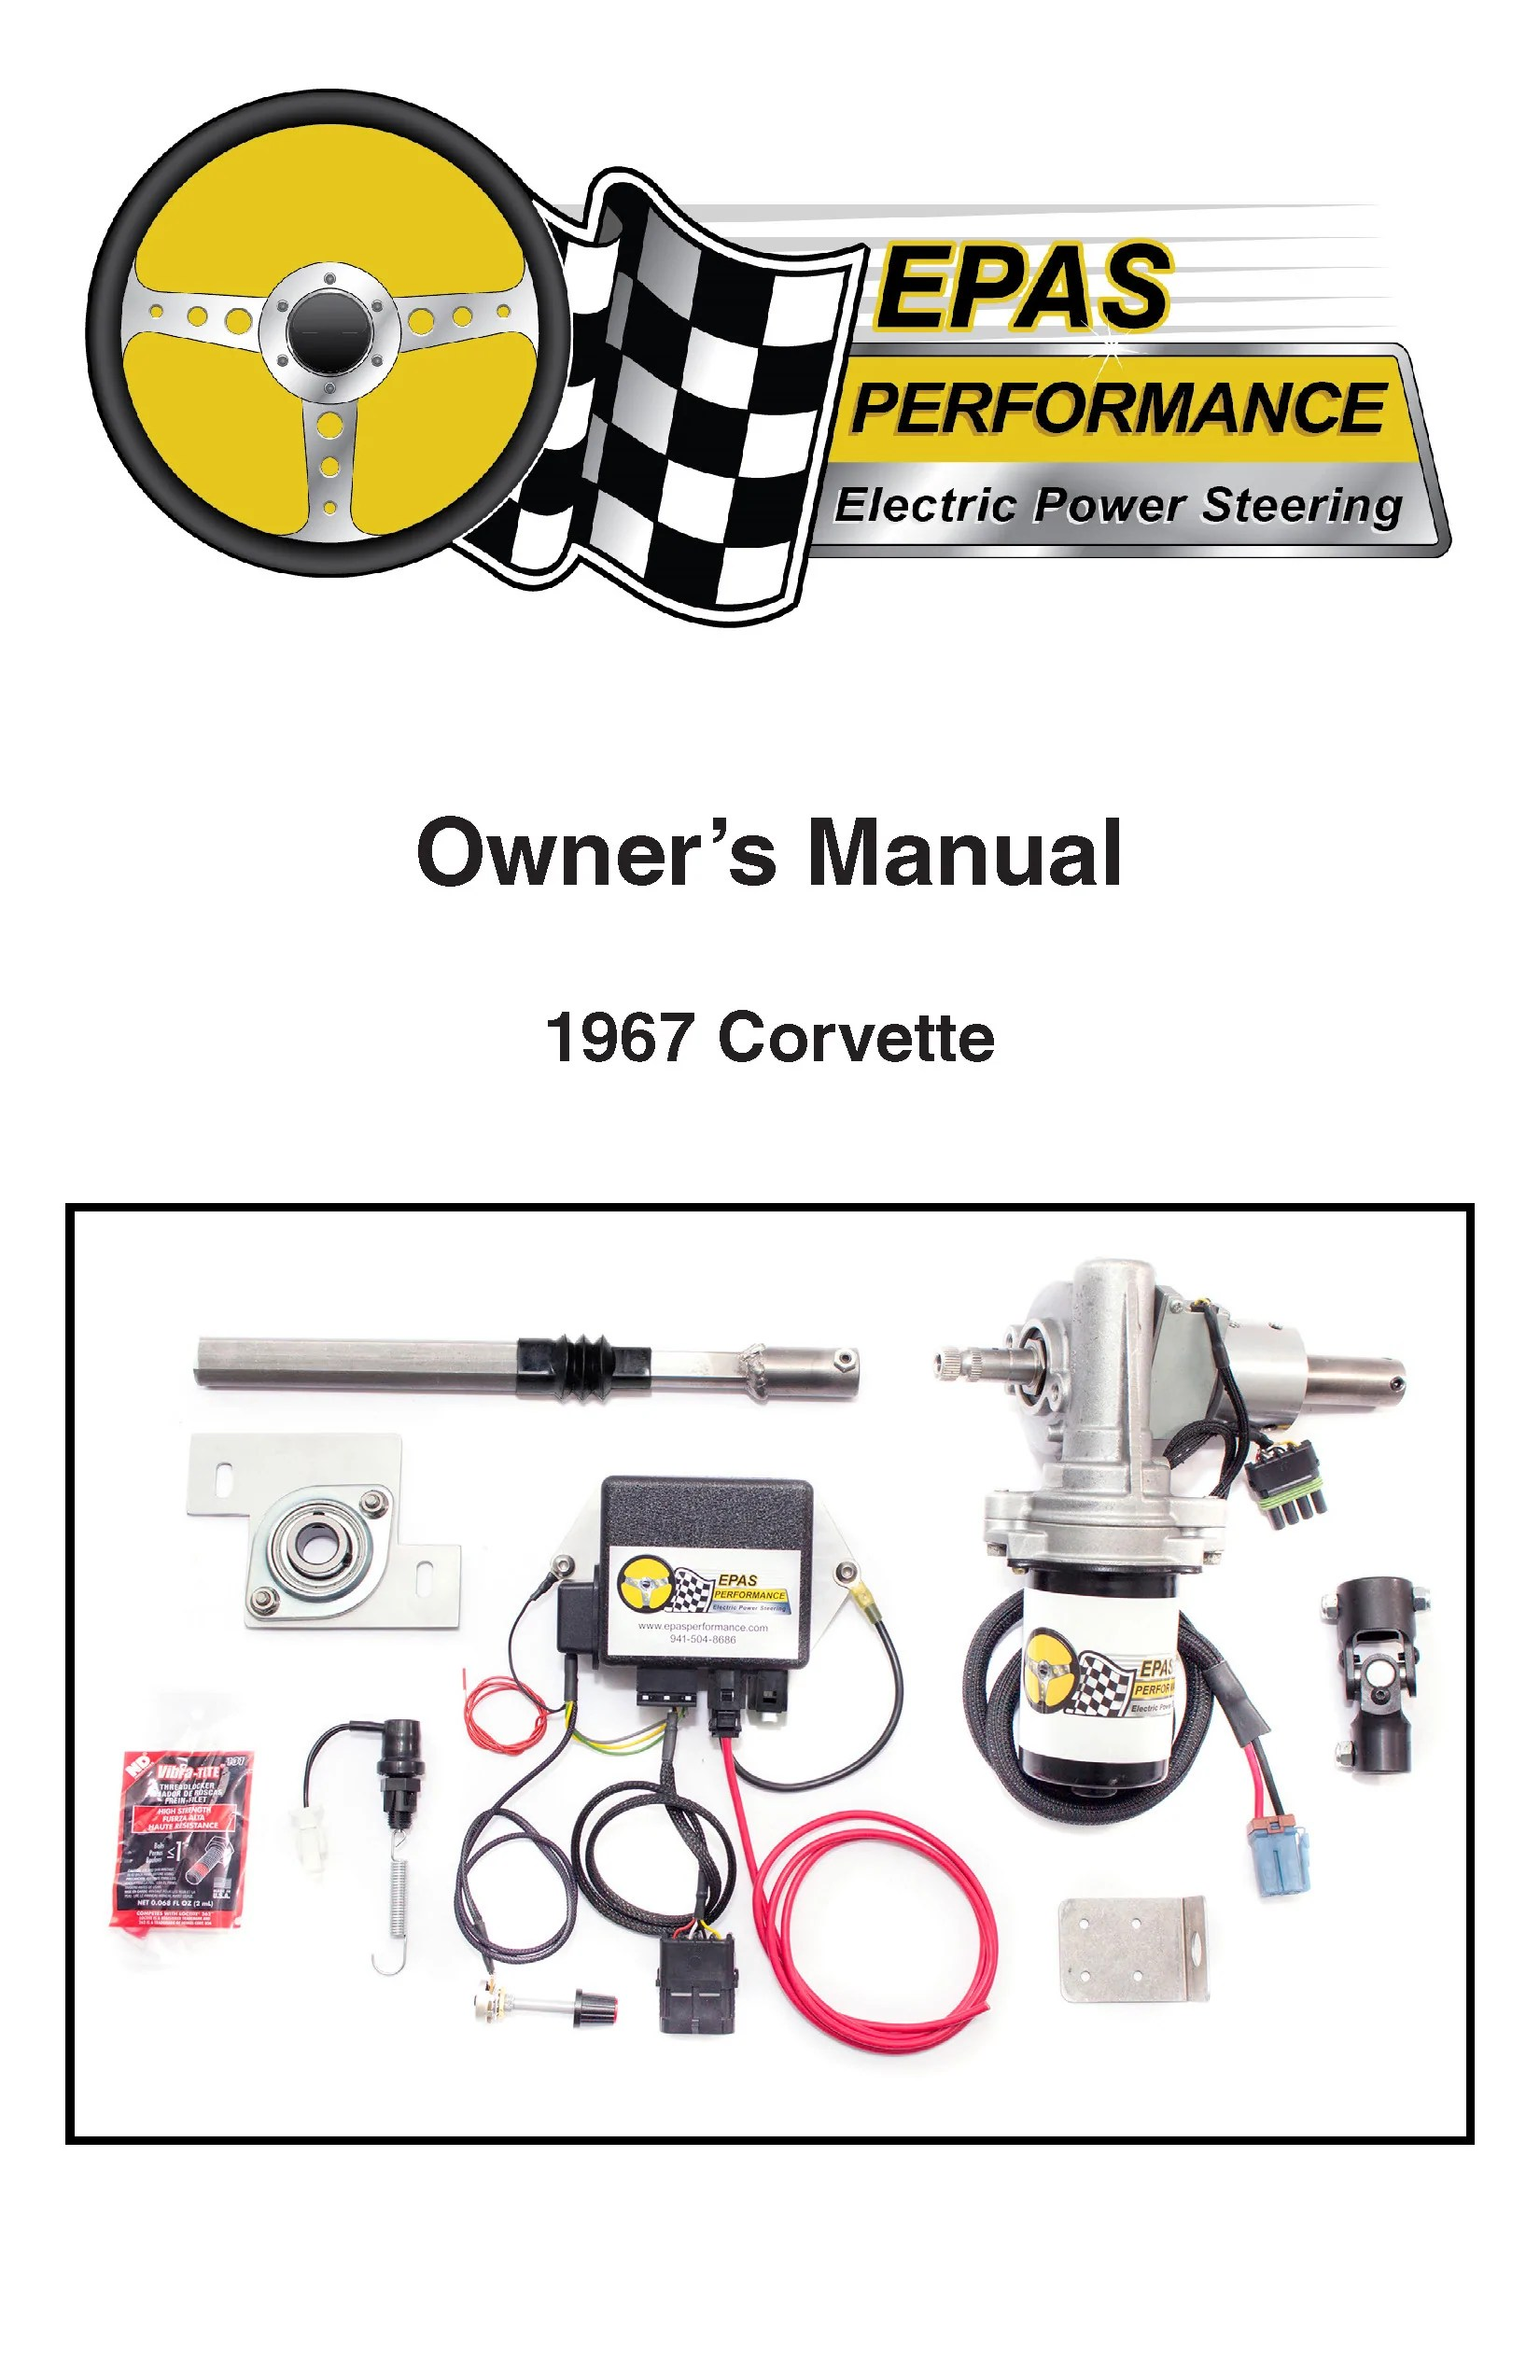 hight resolution of 1967 corvette click to open download pdf